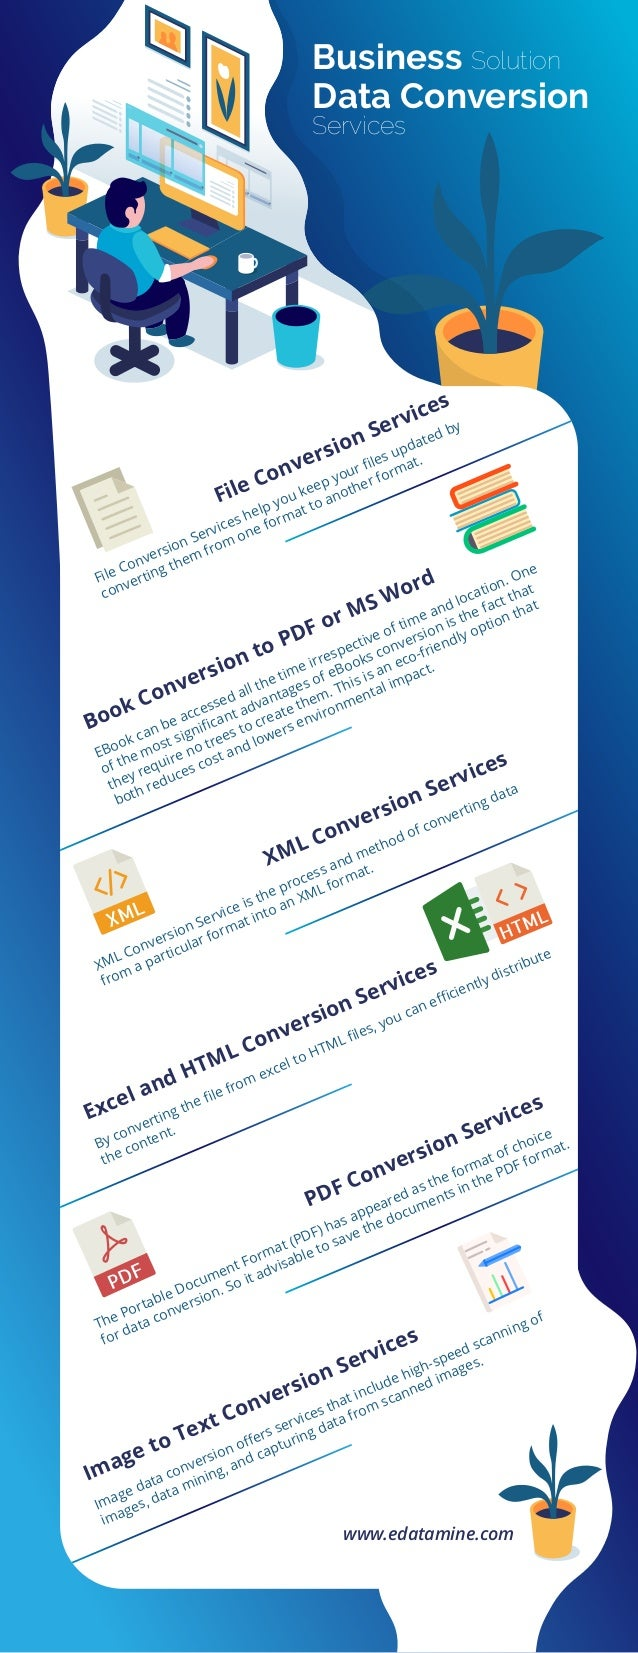 Business Solution Data Conversion Services File Conversion Services File Conversion Services help you keep your files updat...